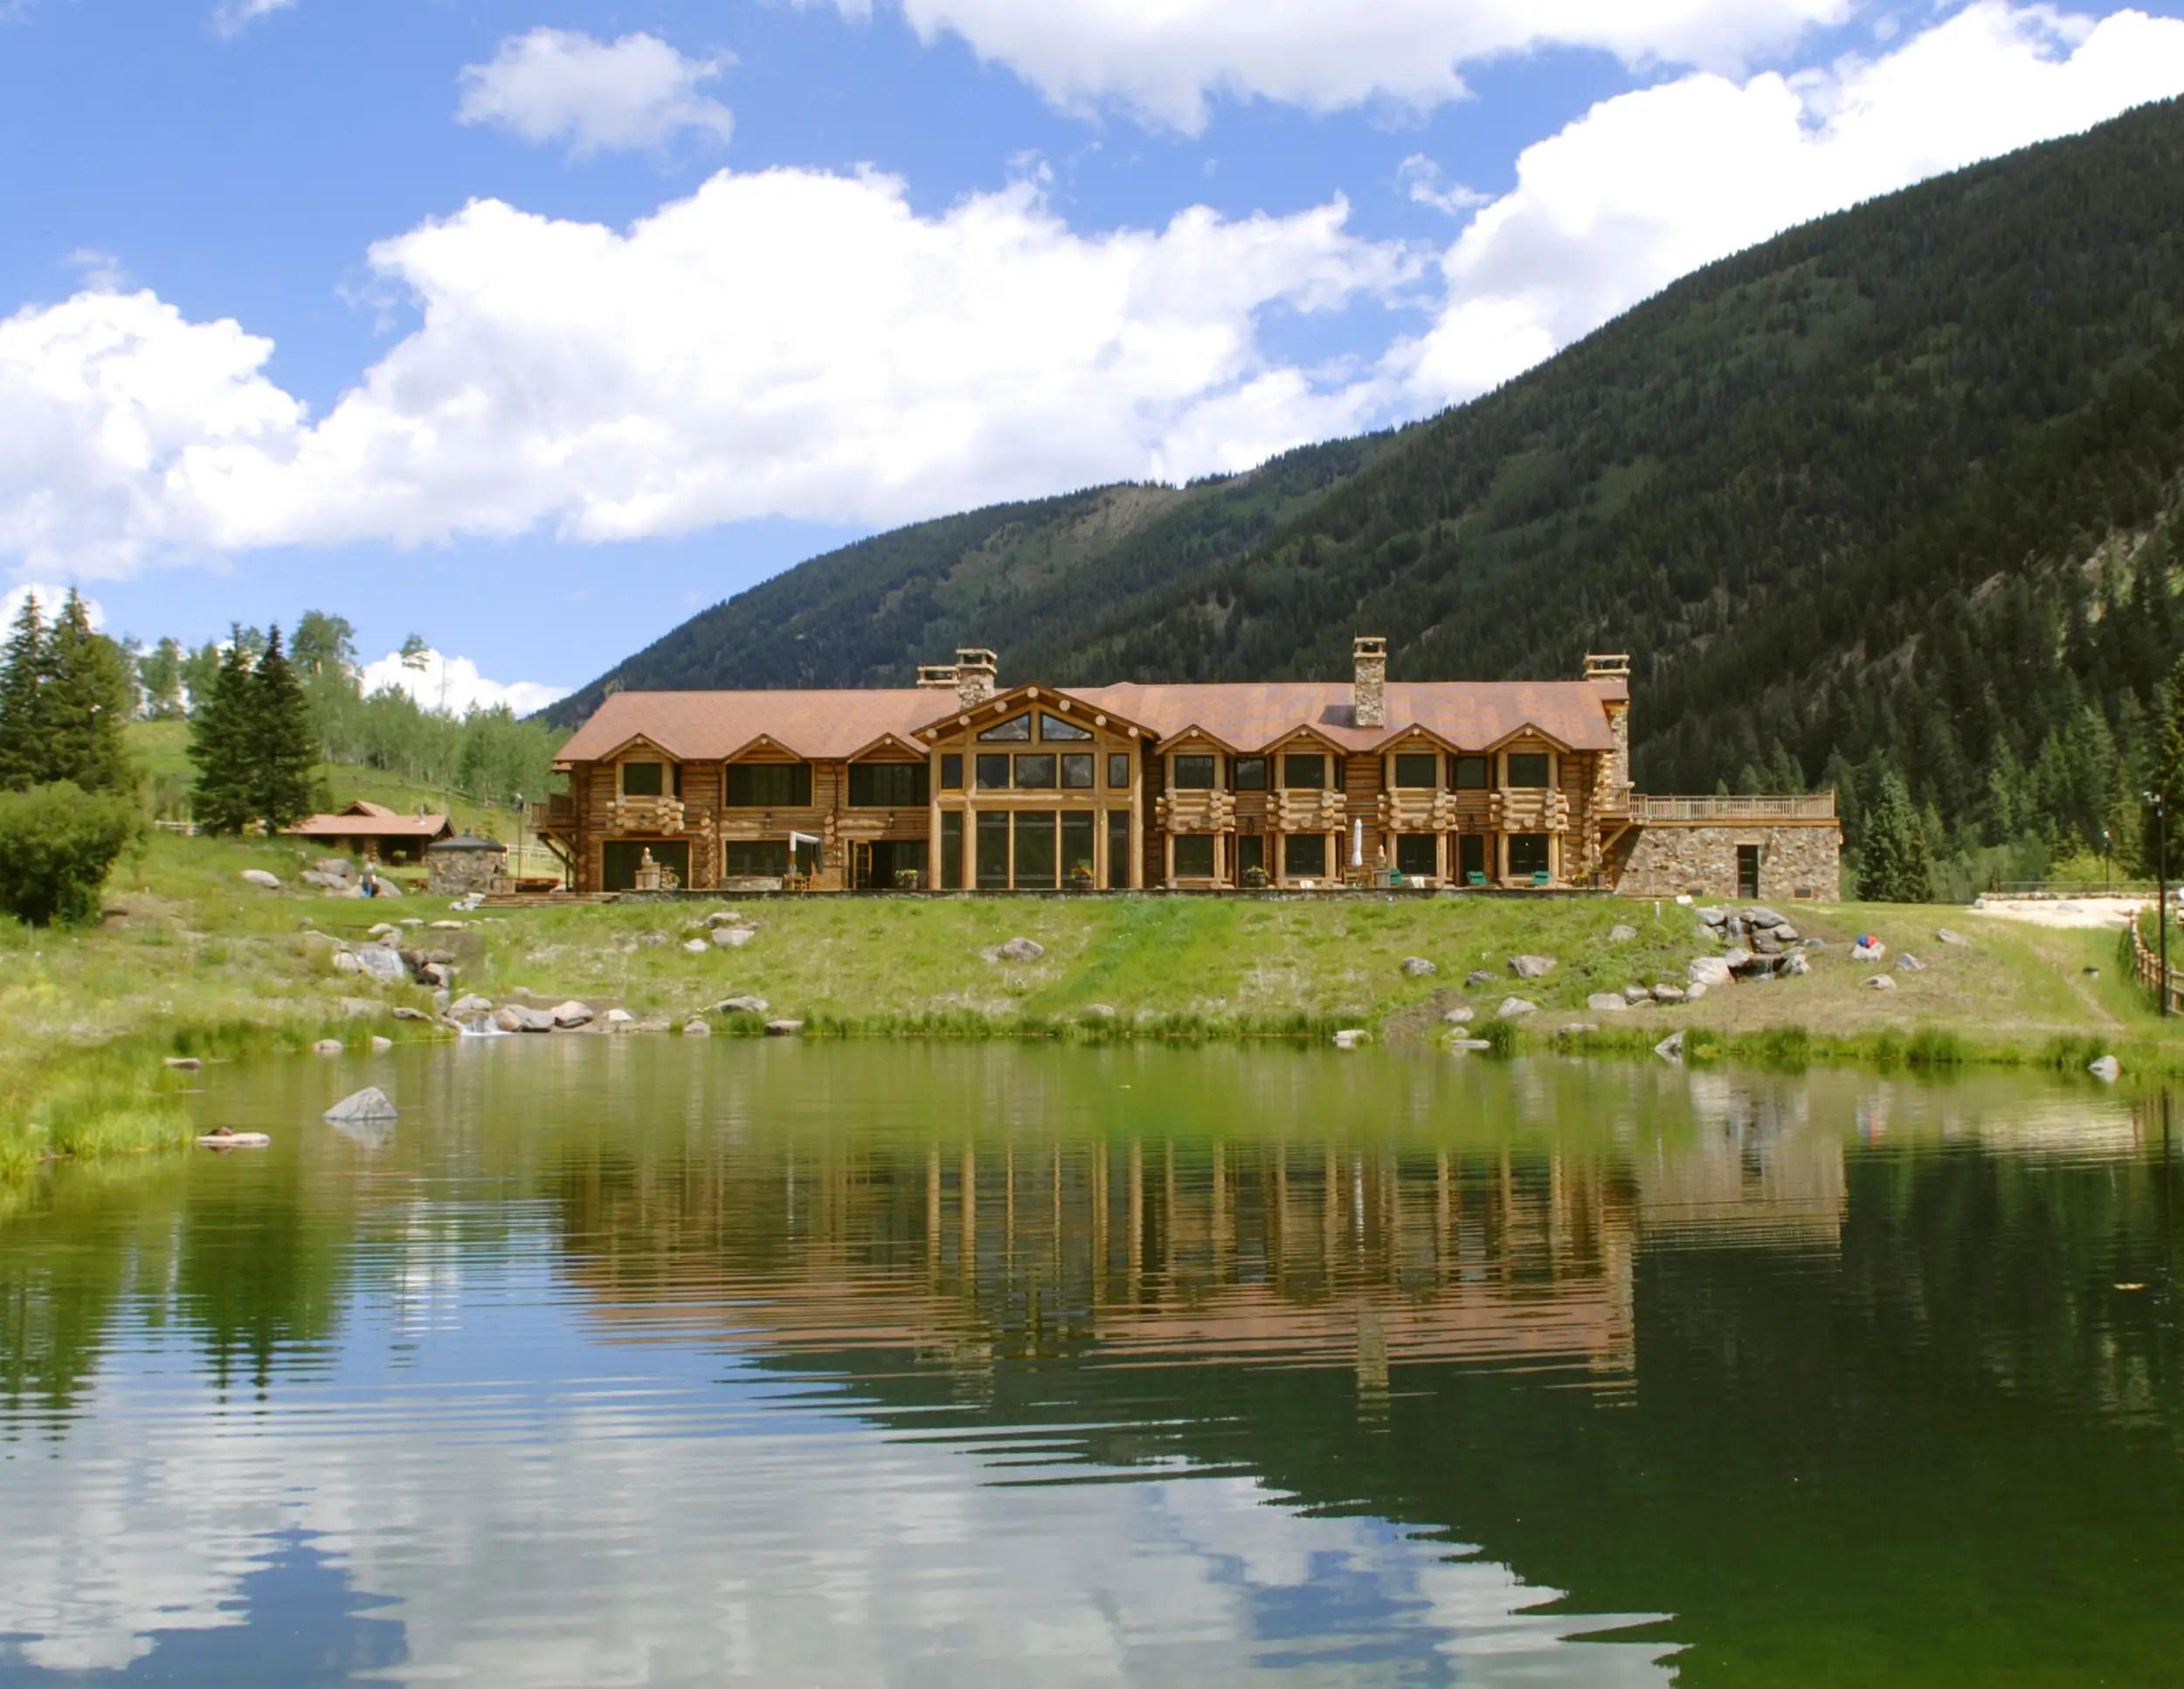 And finally there's the main house,Elk Mountain Lodge. It's 15,000 square feet of classic Western decadence overlooking the water.